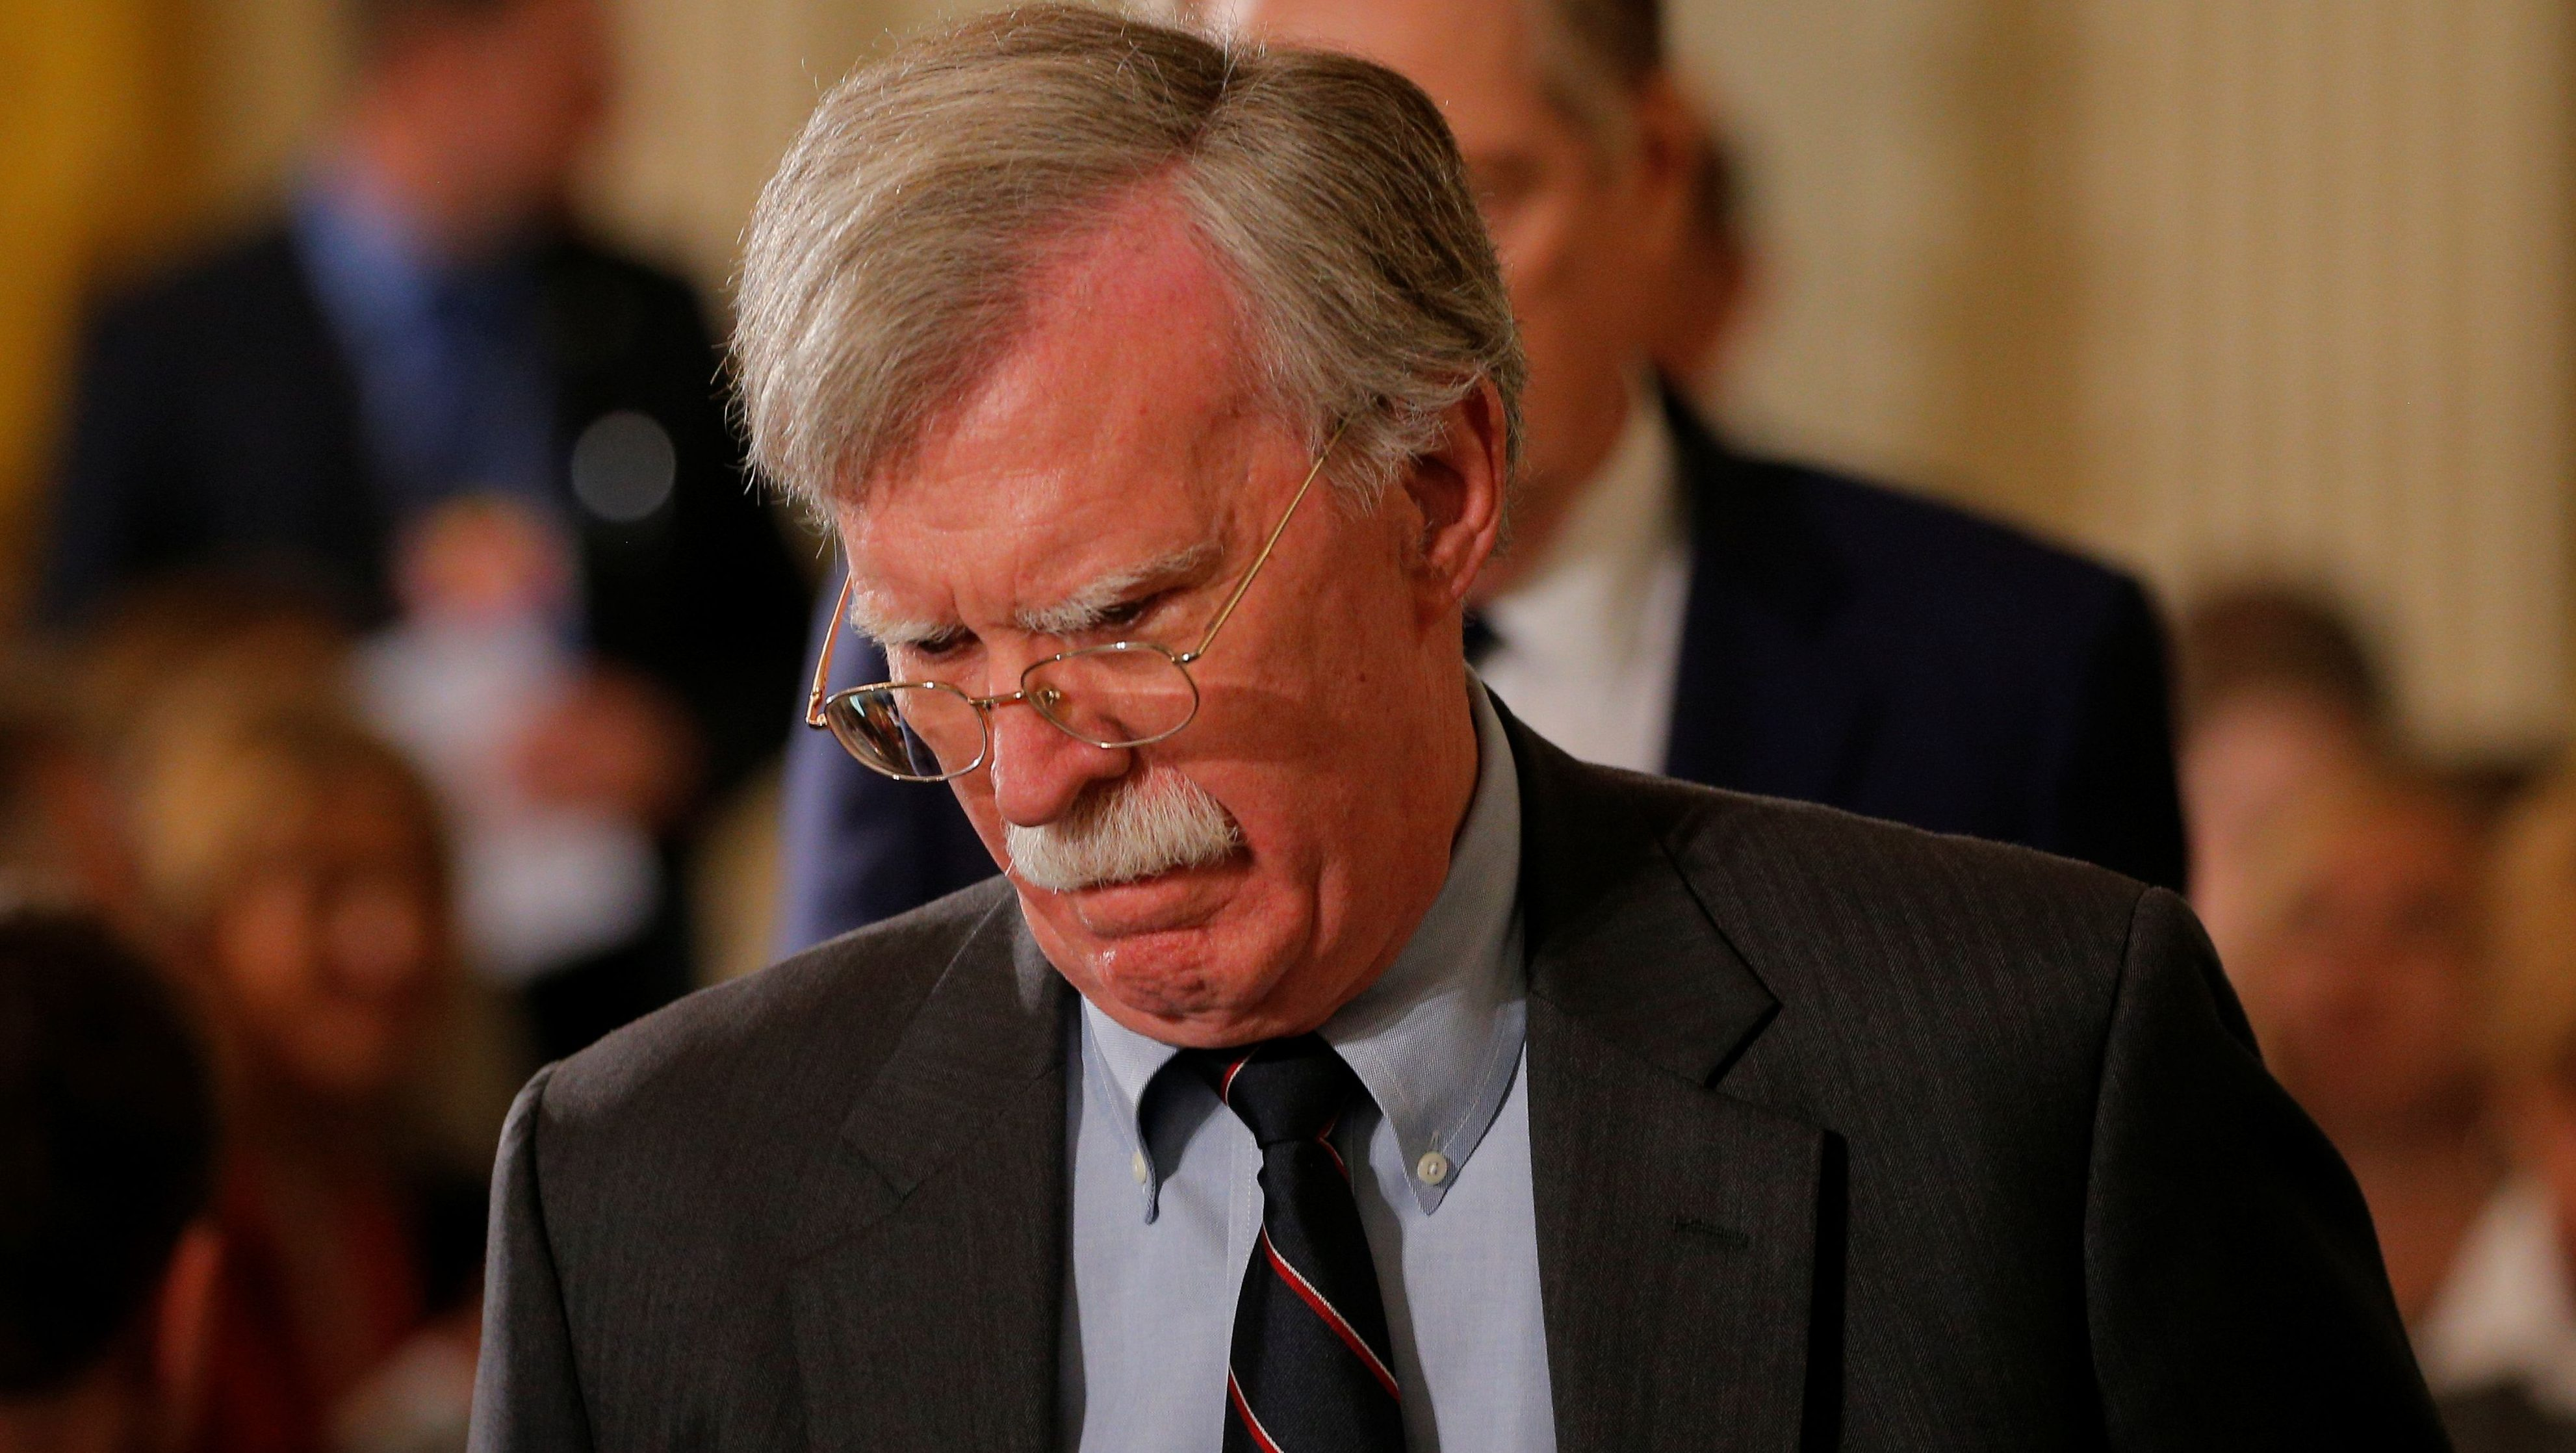 National Security Advisor John Bolton arrives before a joint news conference of U.S. President Donald Trump and Germany's Chancellor Angela Merkel in the East Room of the White House in Washington, U.S., April 27, 2018. REUTERS/Brian Snyder - RC148D30EDF0